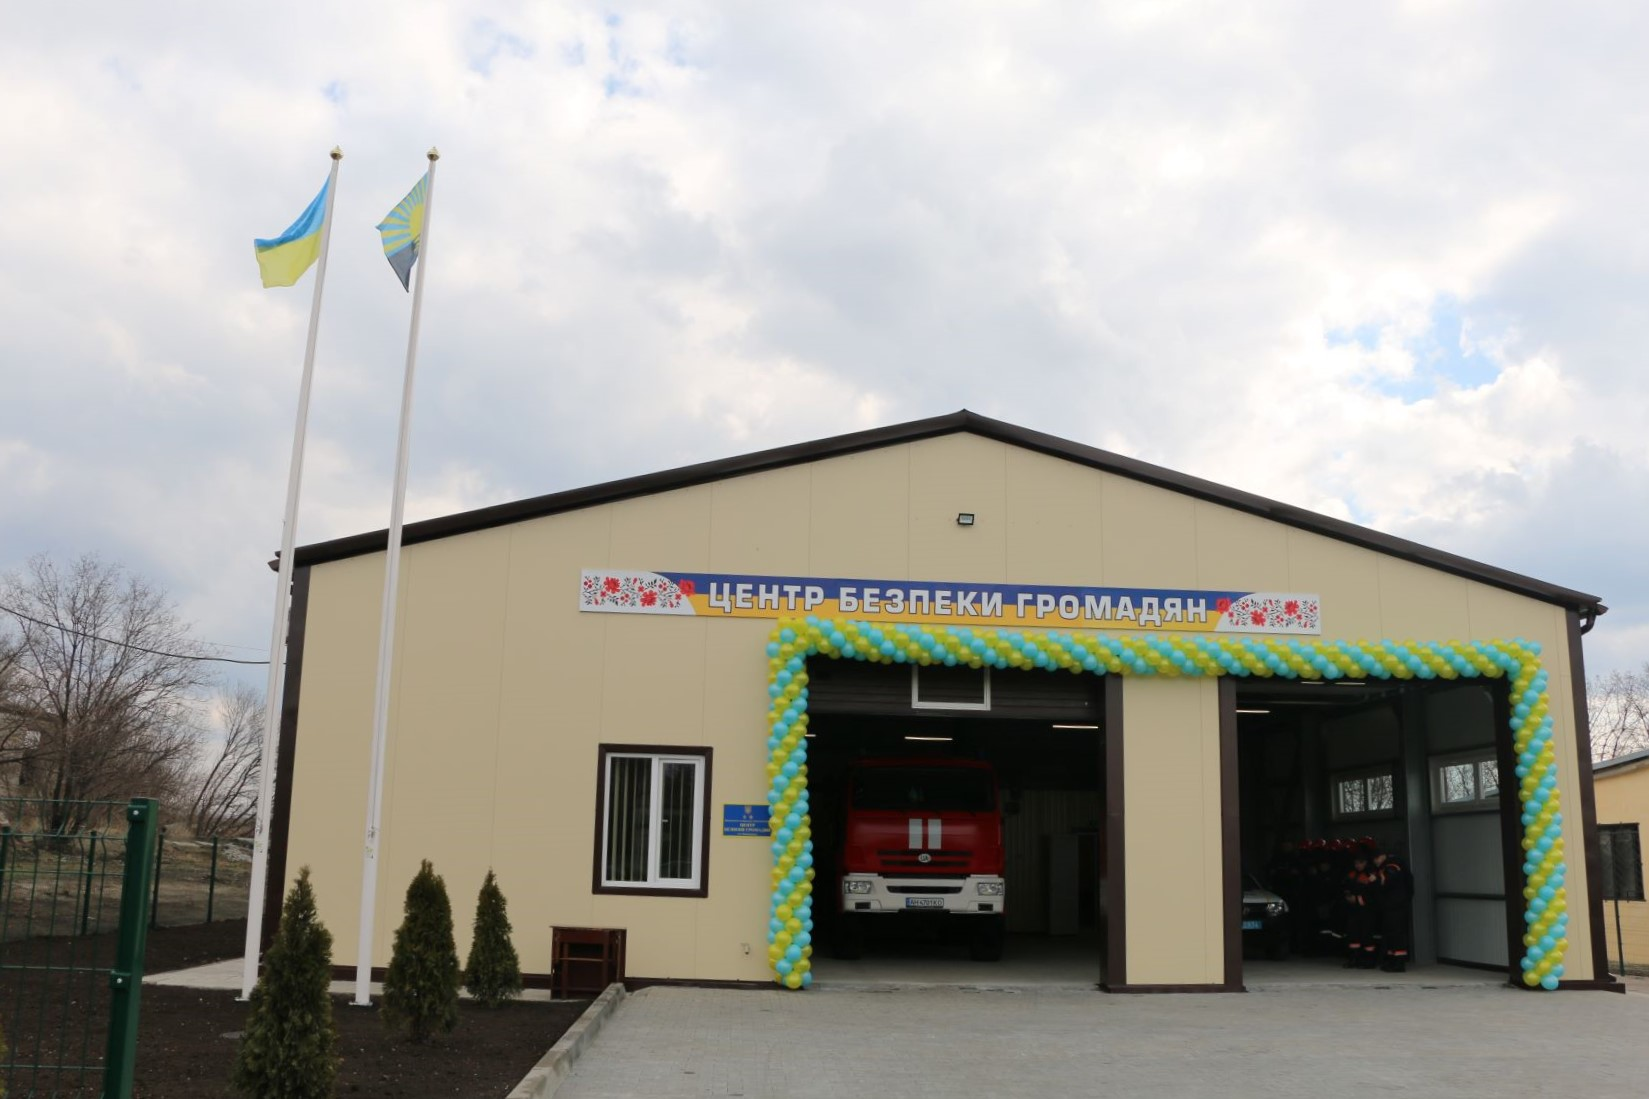 Two more Safety Centres opened in Donetsk Oblast